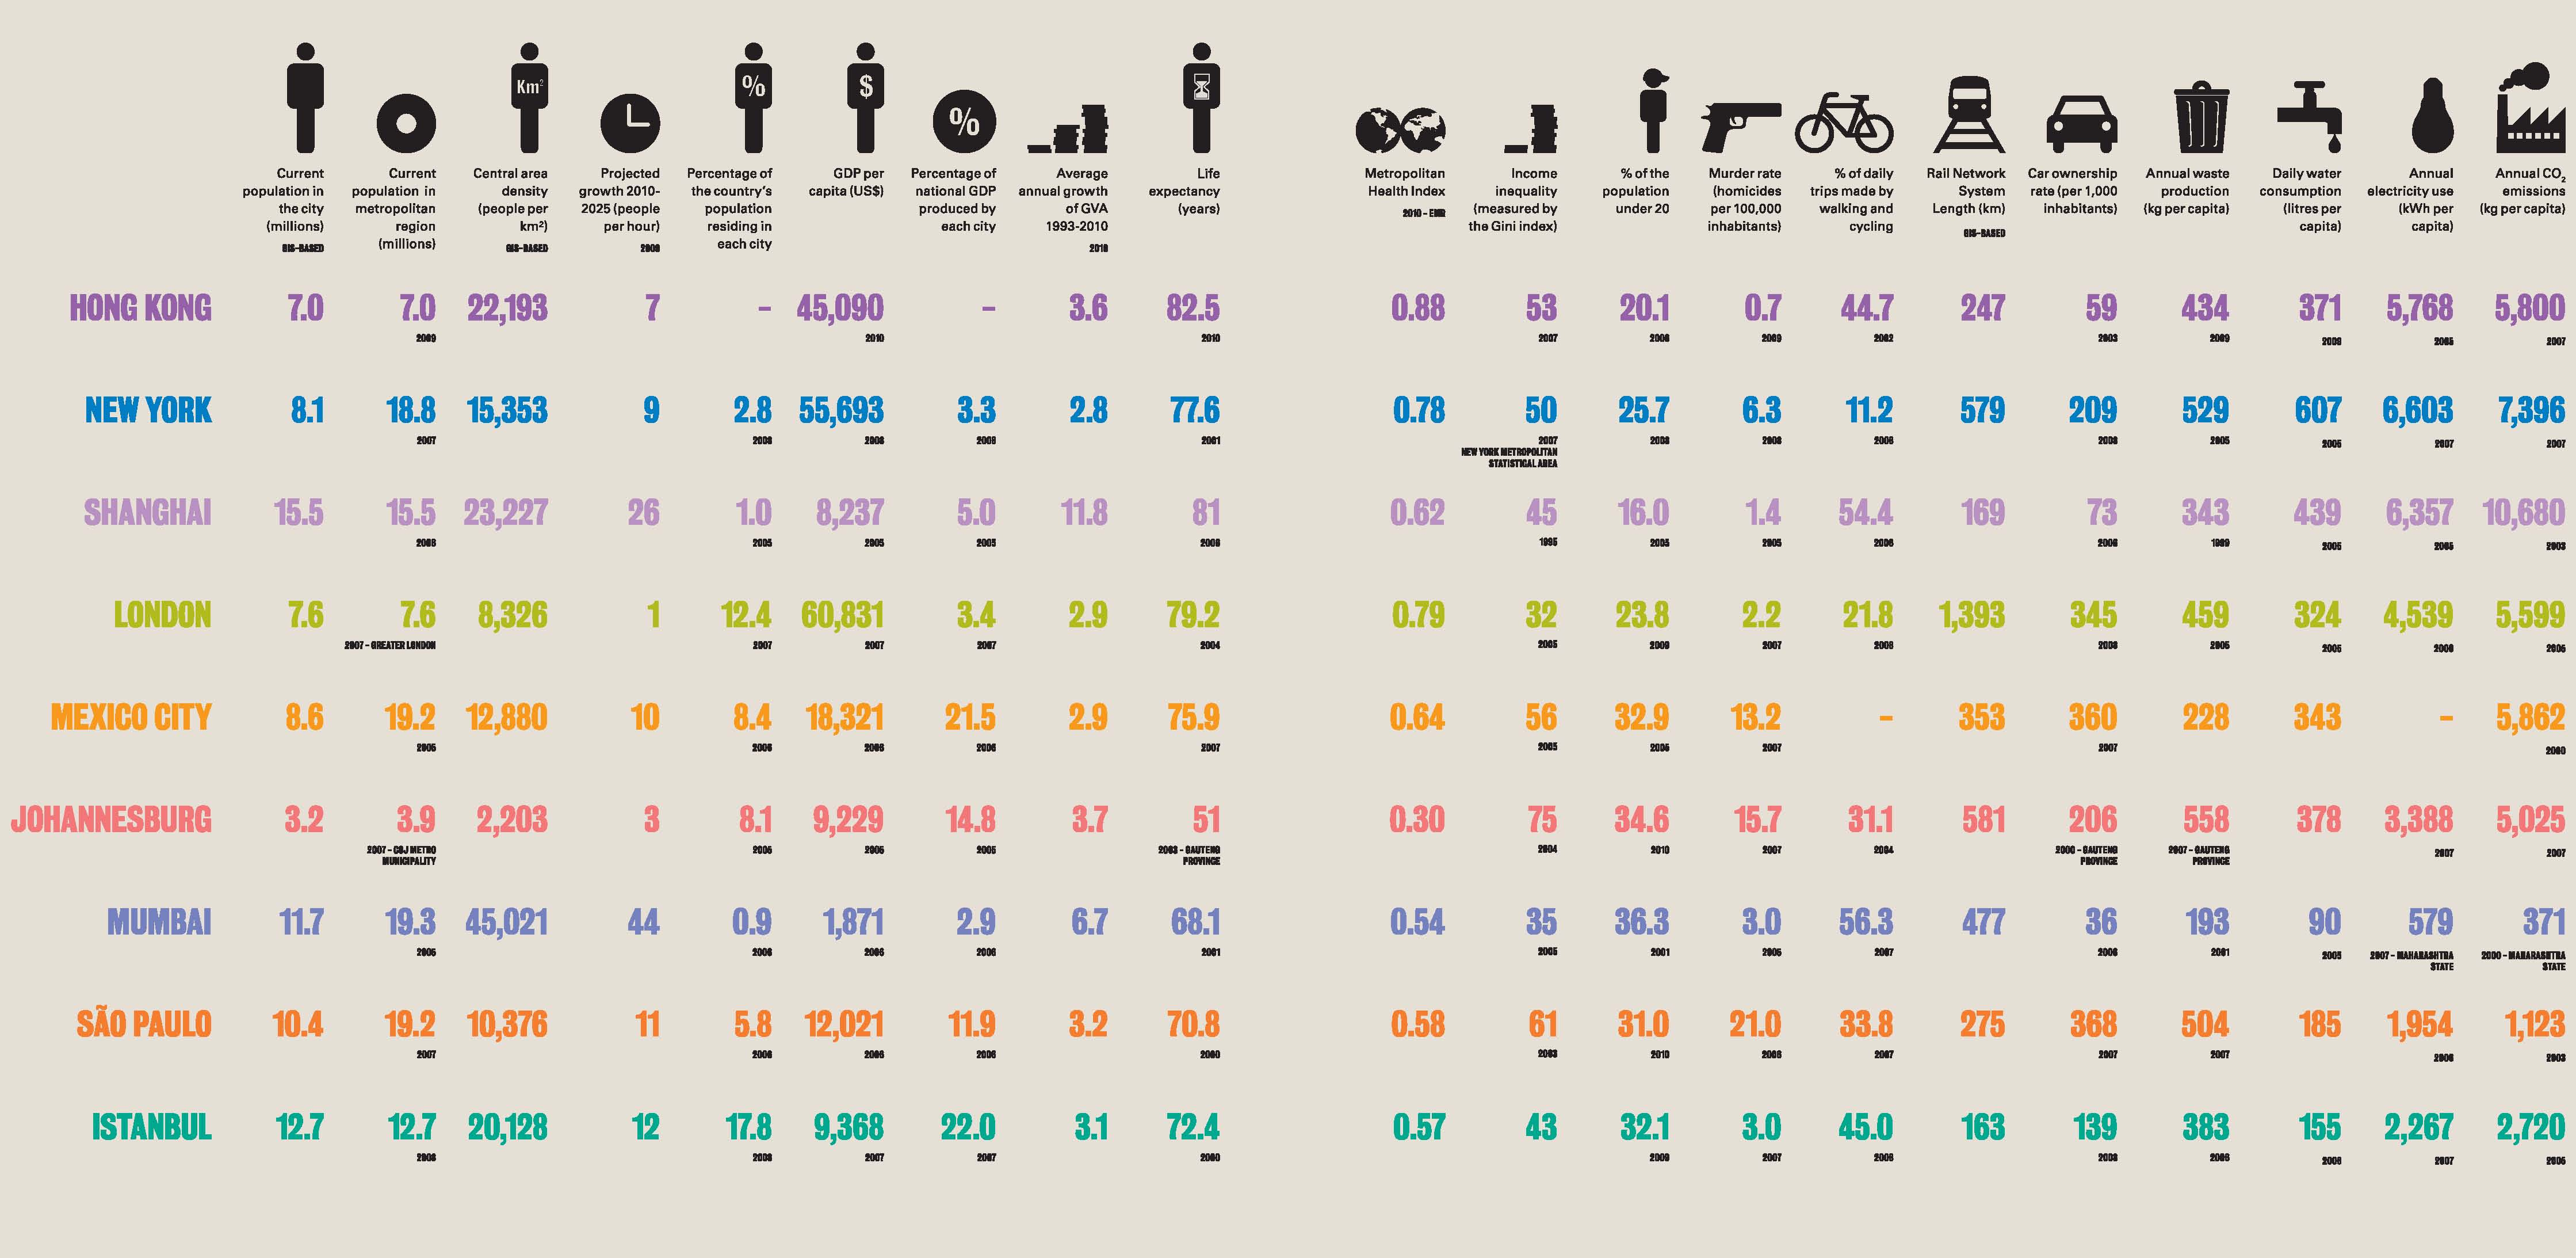 Urban Age Cities Compared Chart 2